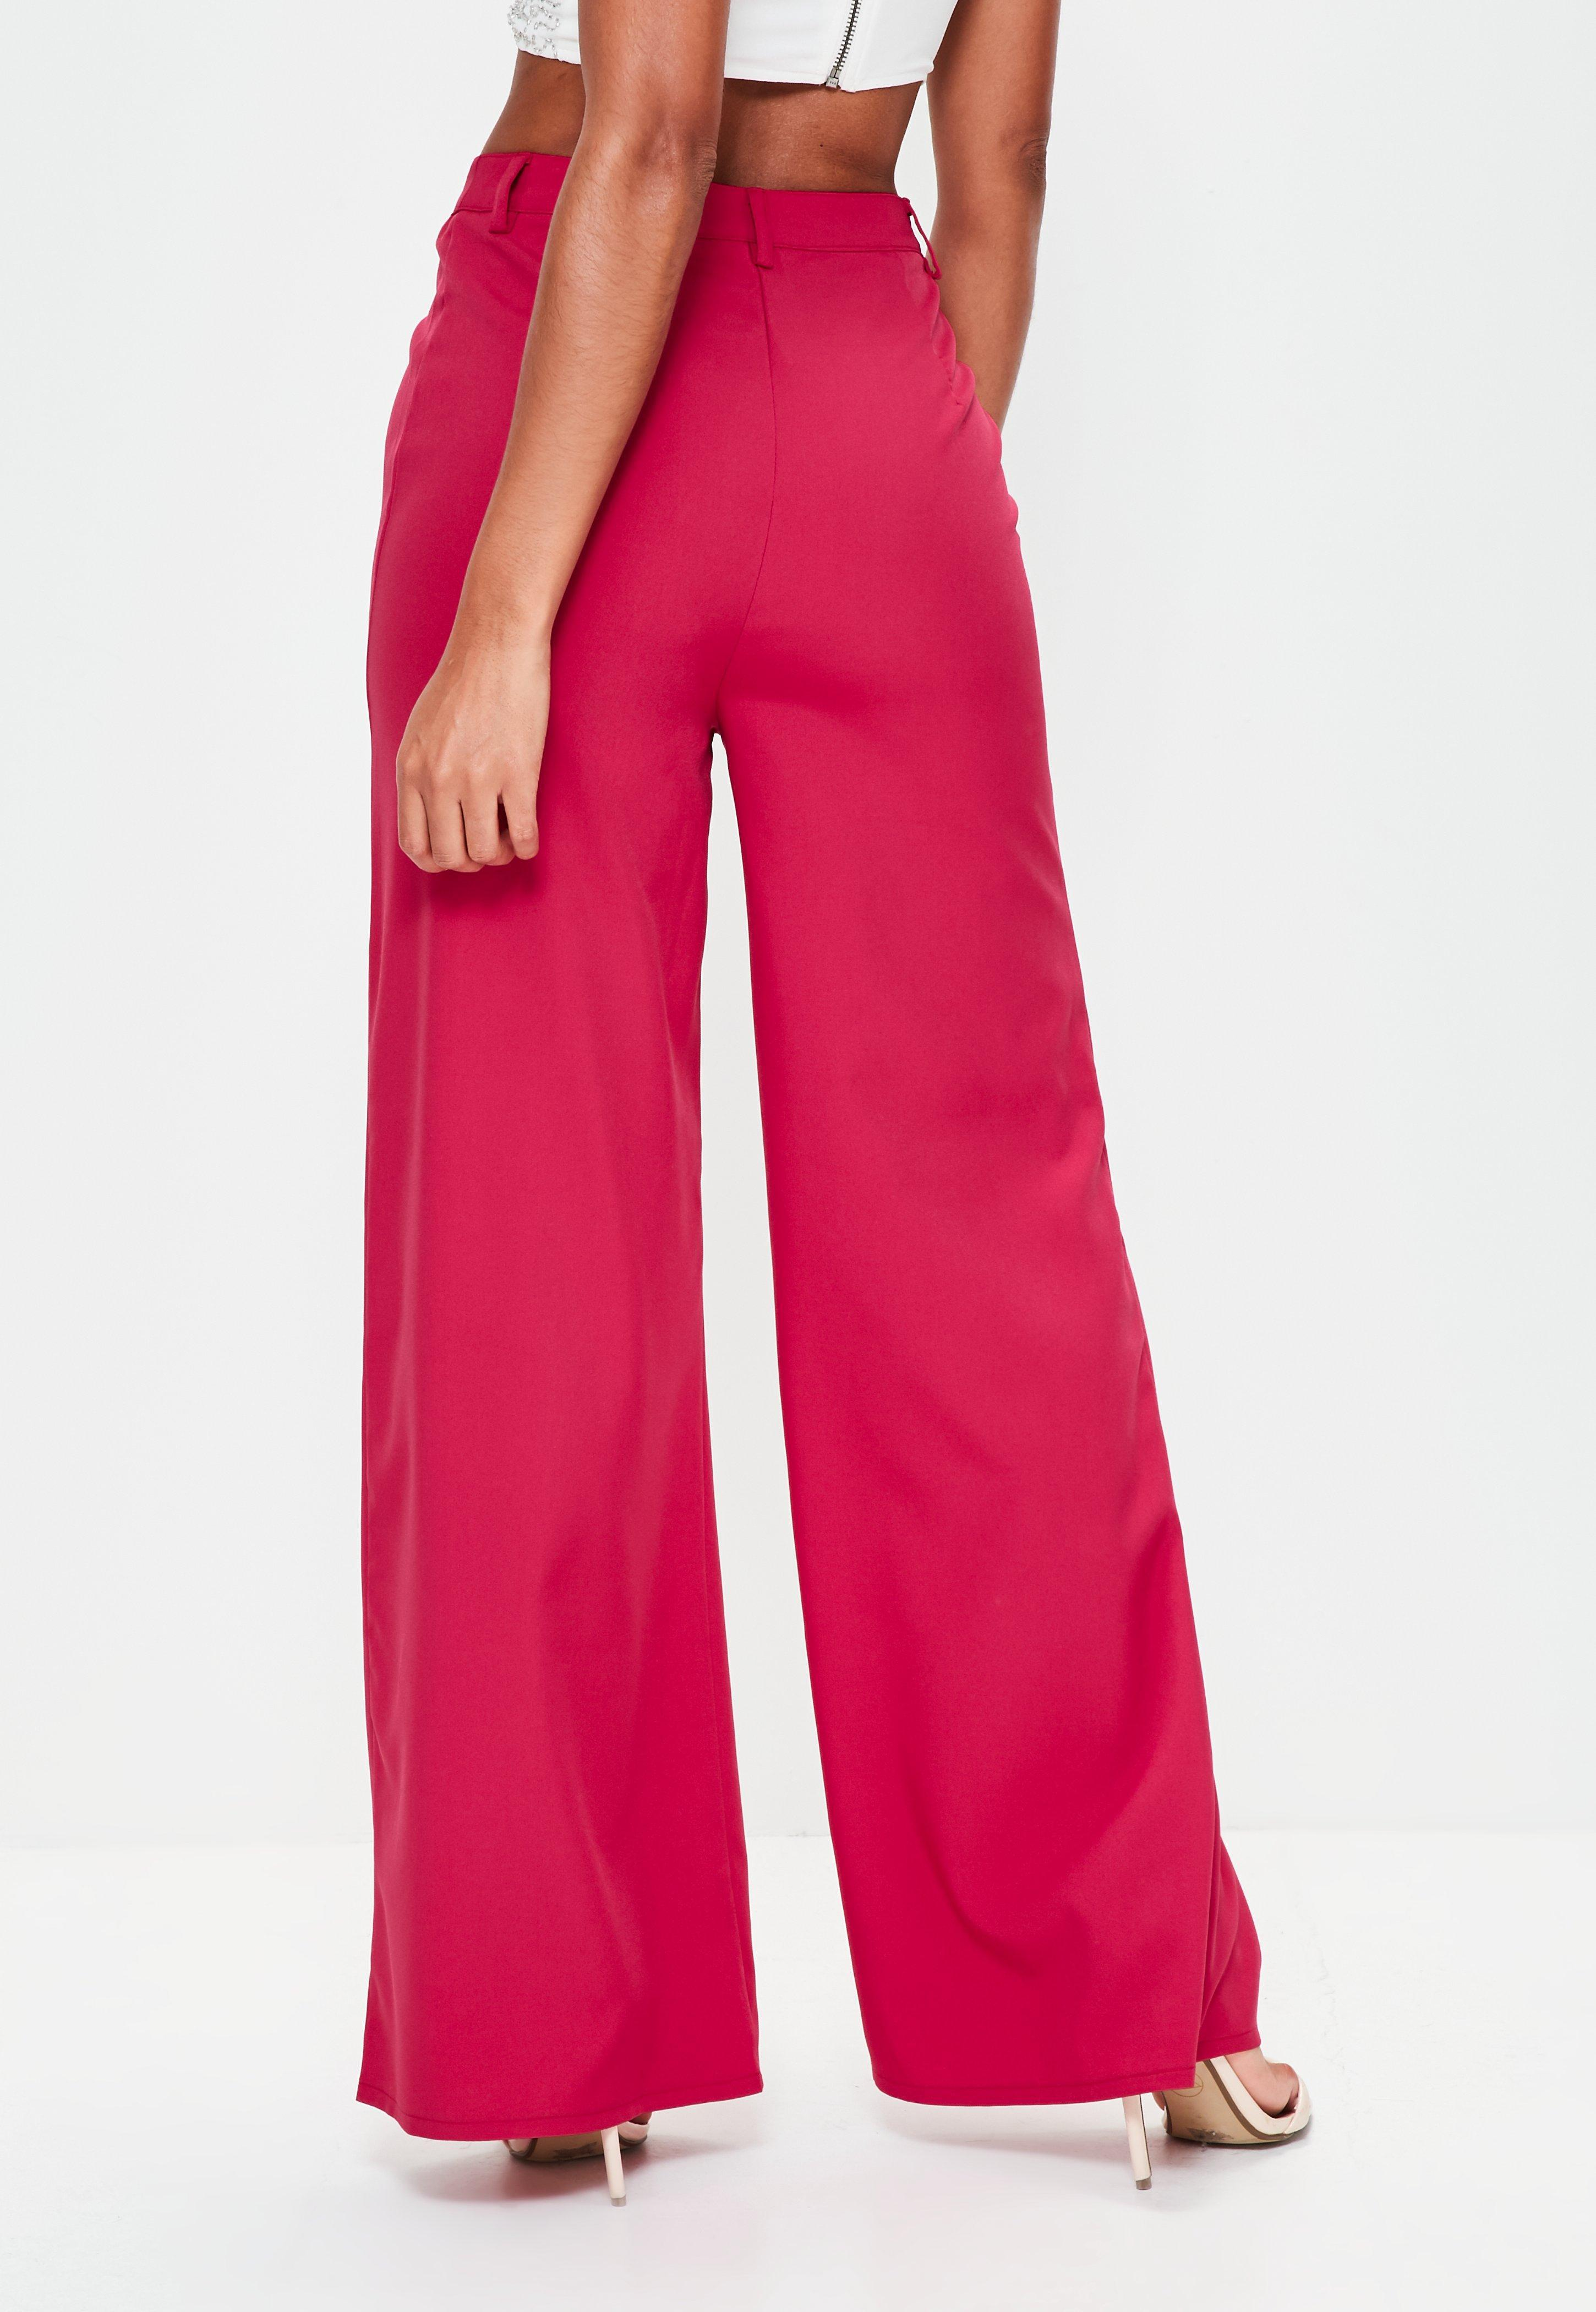 3bb2b026495 Lyst - Missguided Premium Pink Textured Crepe Wide Leg Pants in Pink